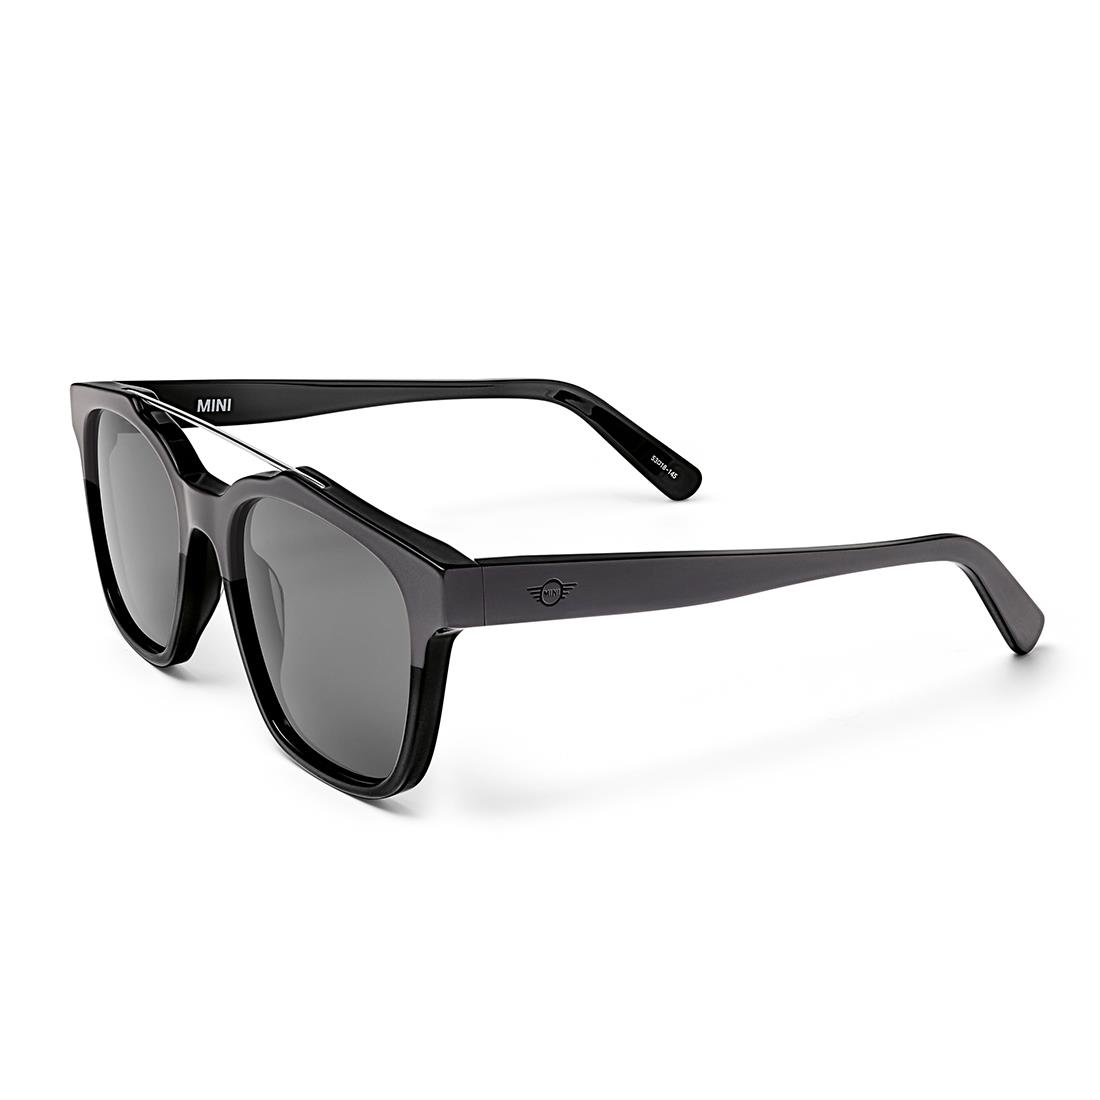 aada4f5705 ShopMINIUSA.com  MINI MATTE SHINE AVIATOR SUNGLASSES